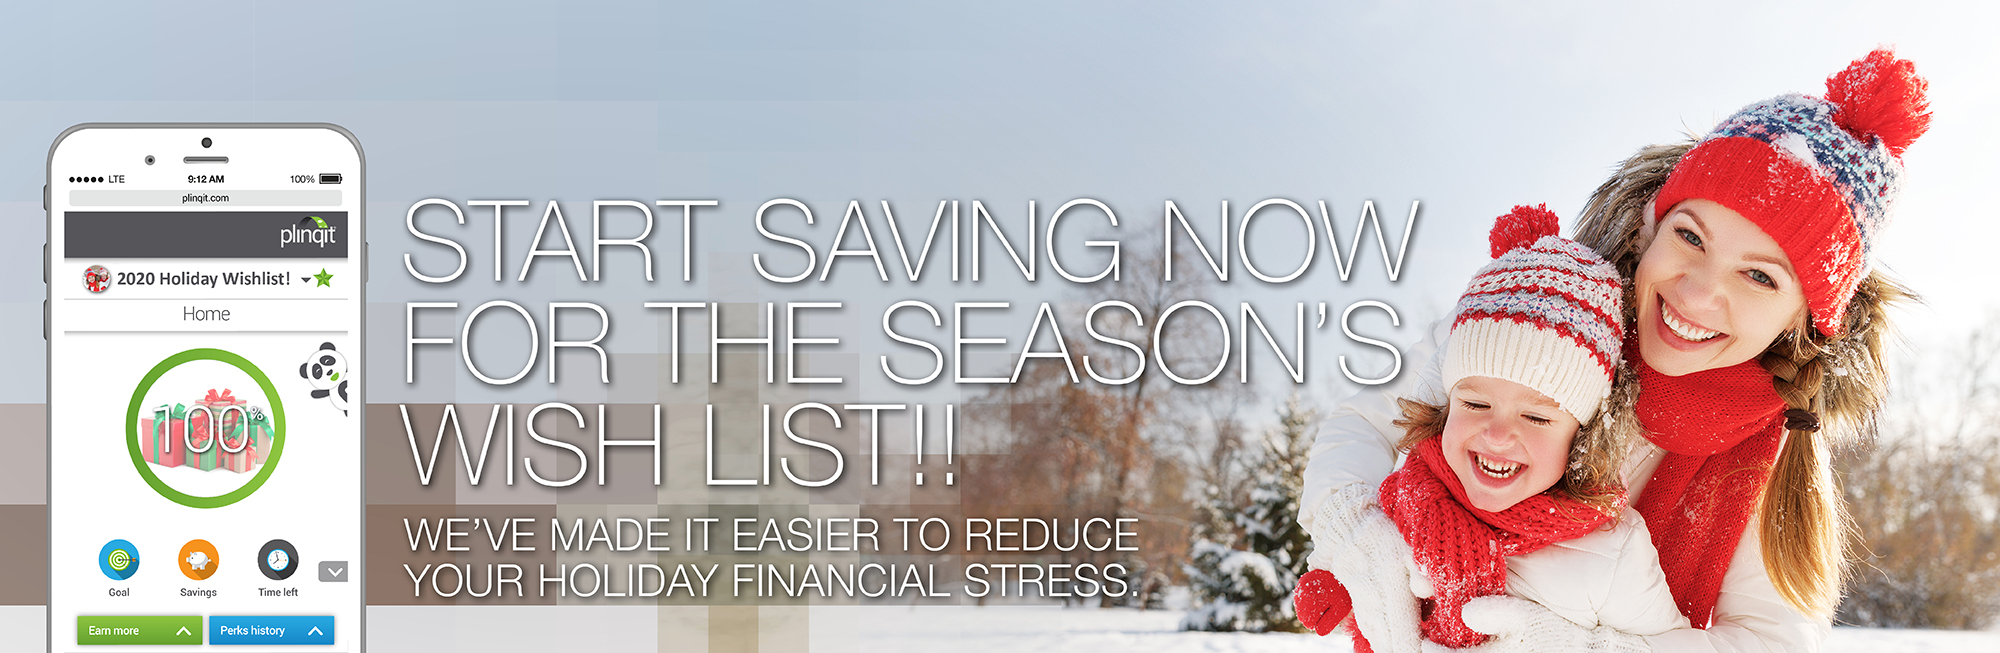 Start Saving Now for your Seasons Wish List with Plinqit!